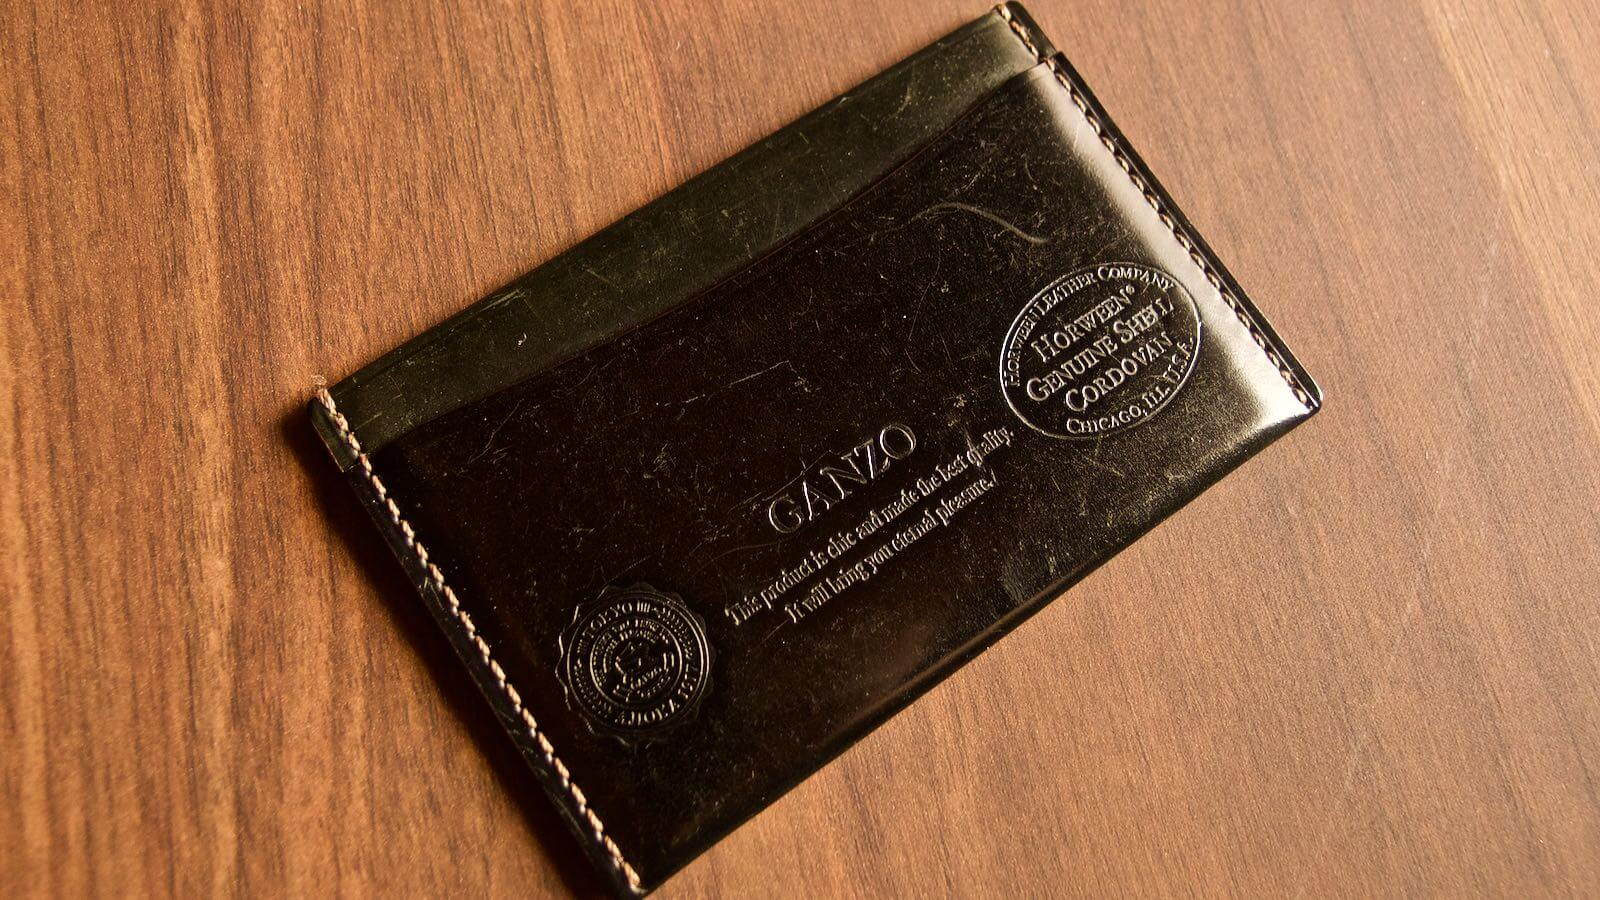 0037 Ganzo Shell Code Bank Business Card Holder 5 Years Aging 02